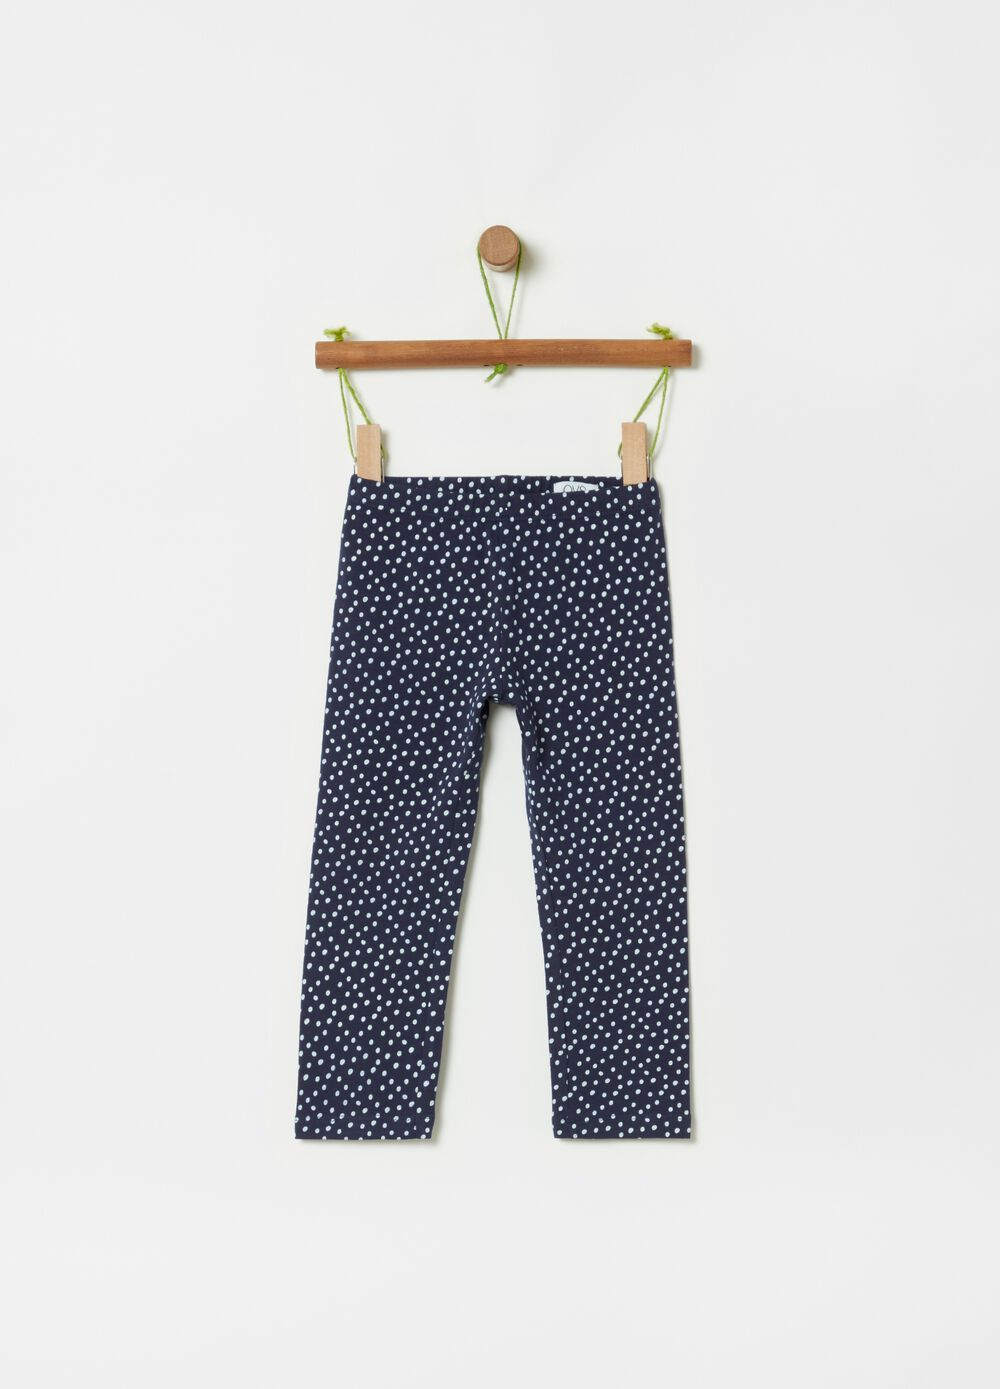 Stretch leggings with all-over polka dot print